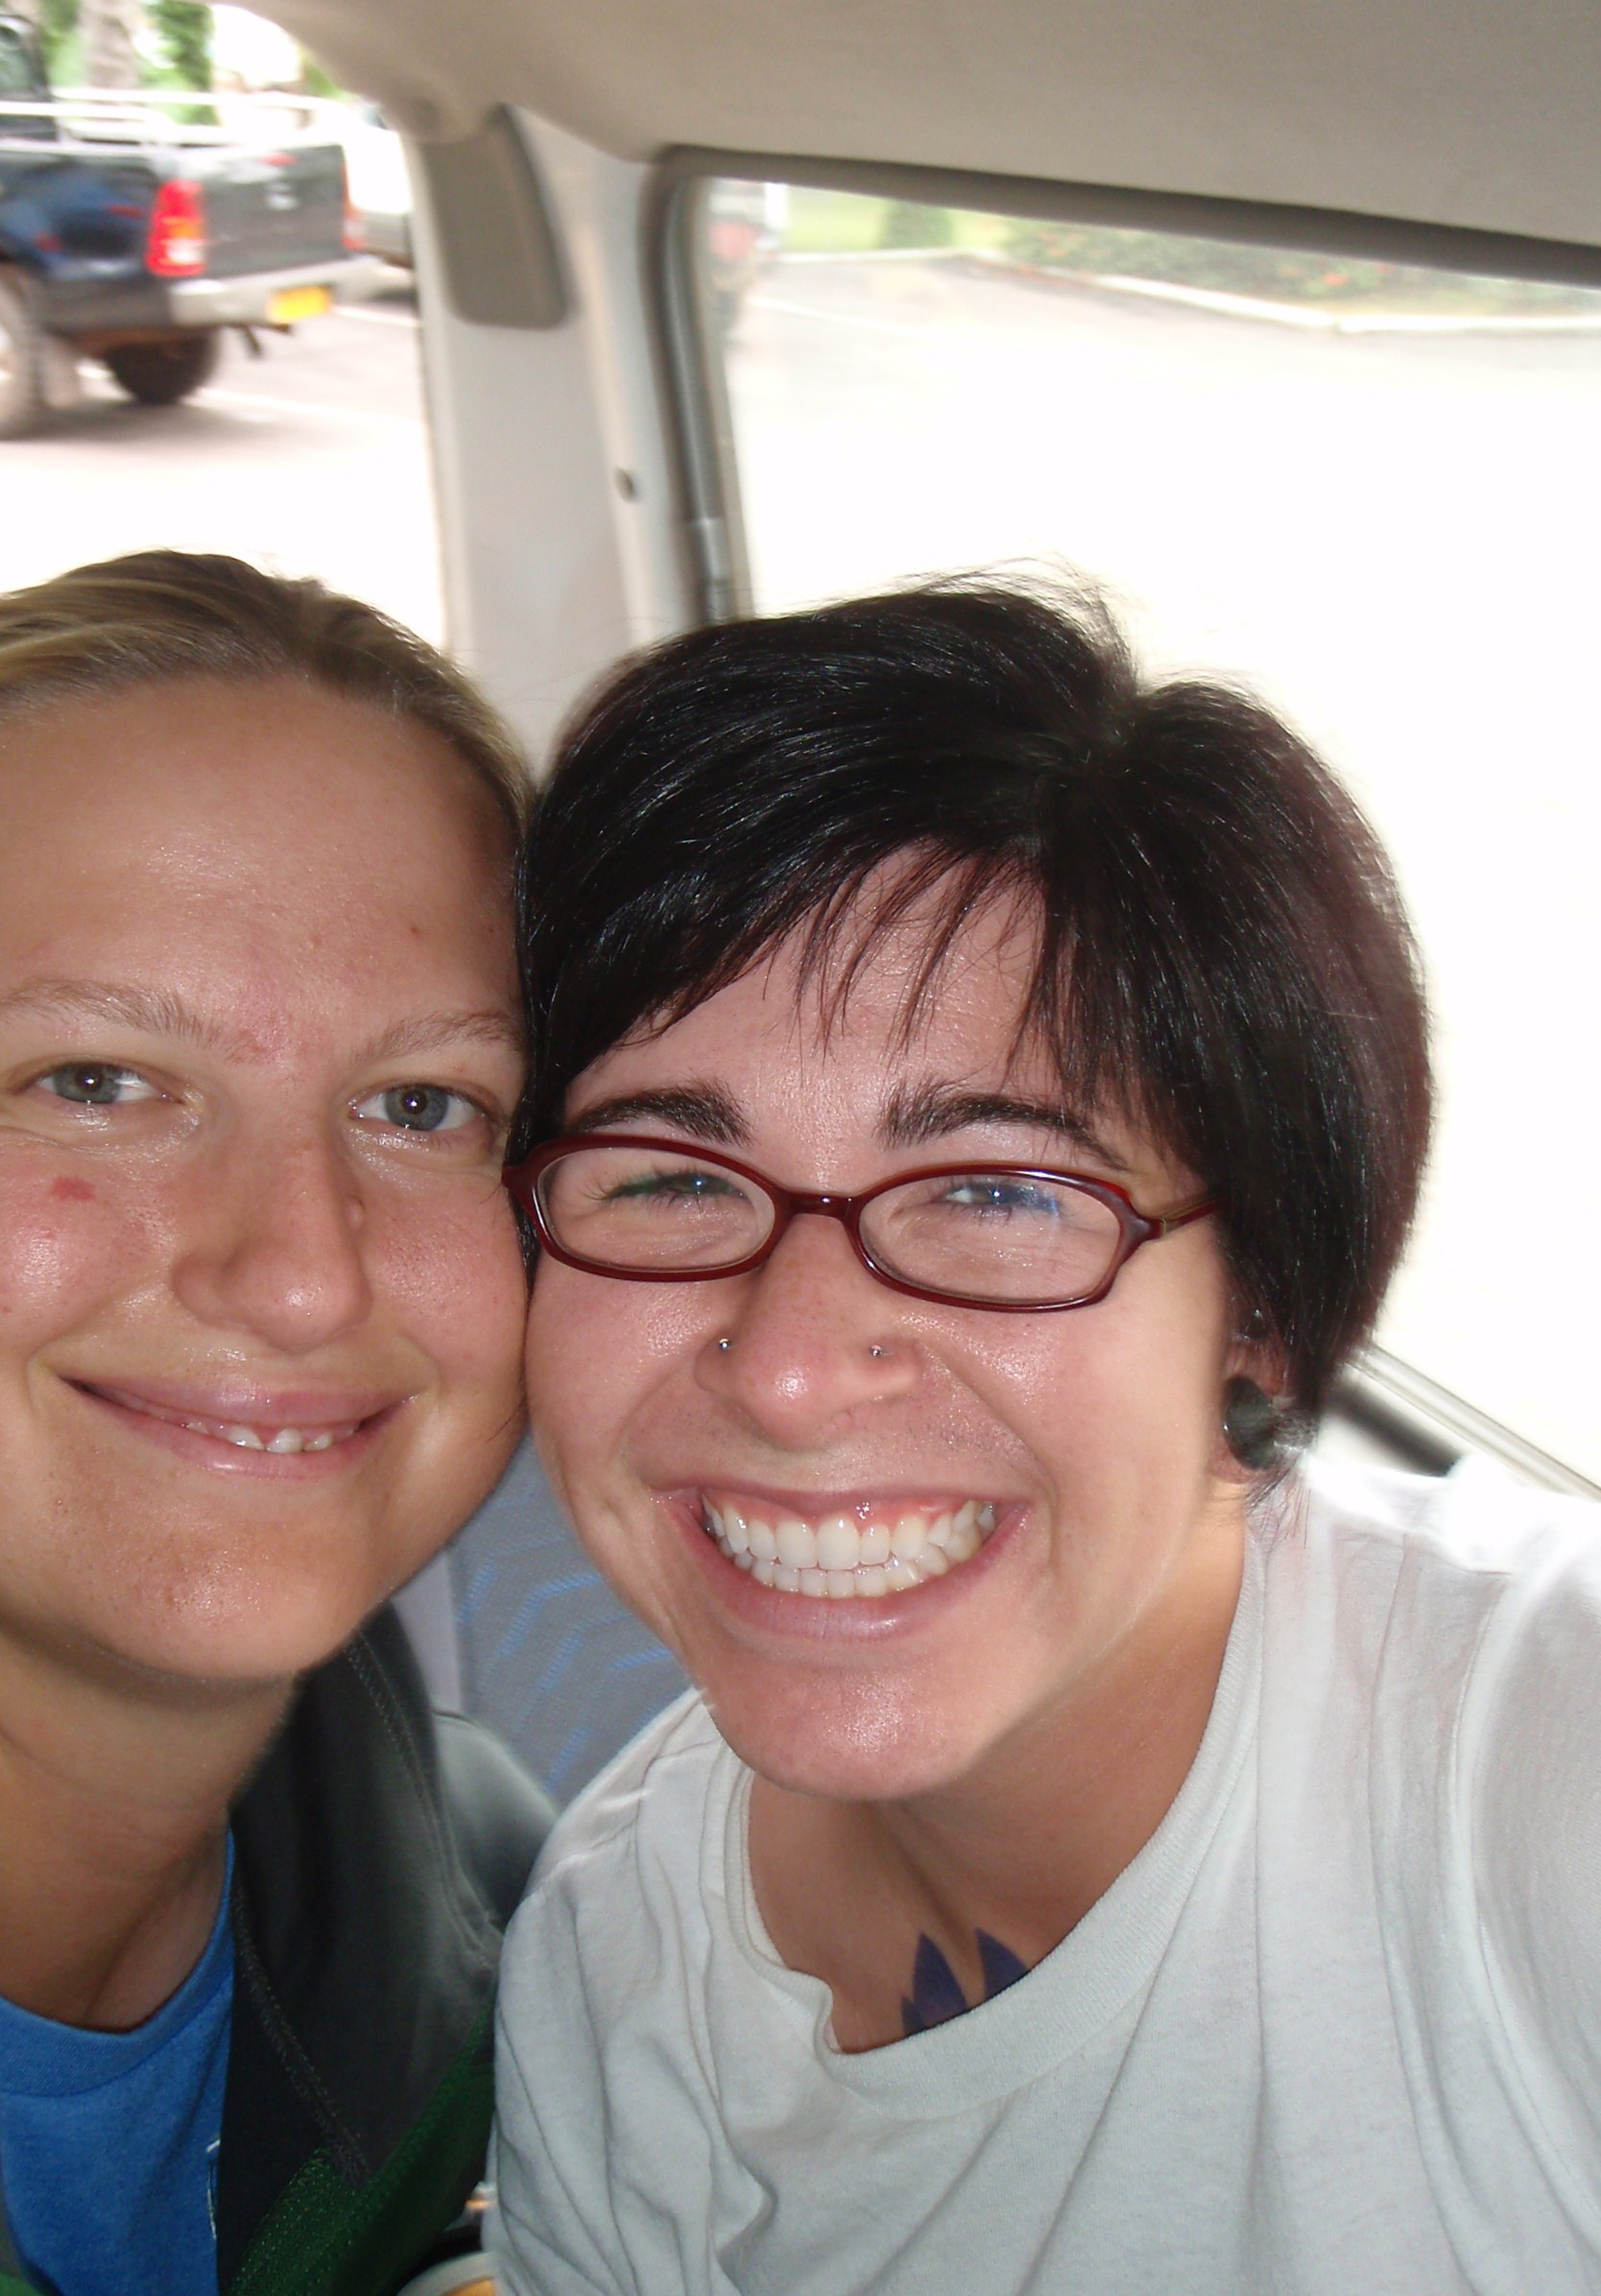 Kelsey and I Selfie; Port Gentil, Gabon; 2010